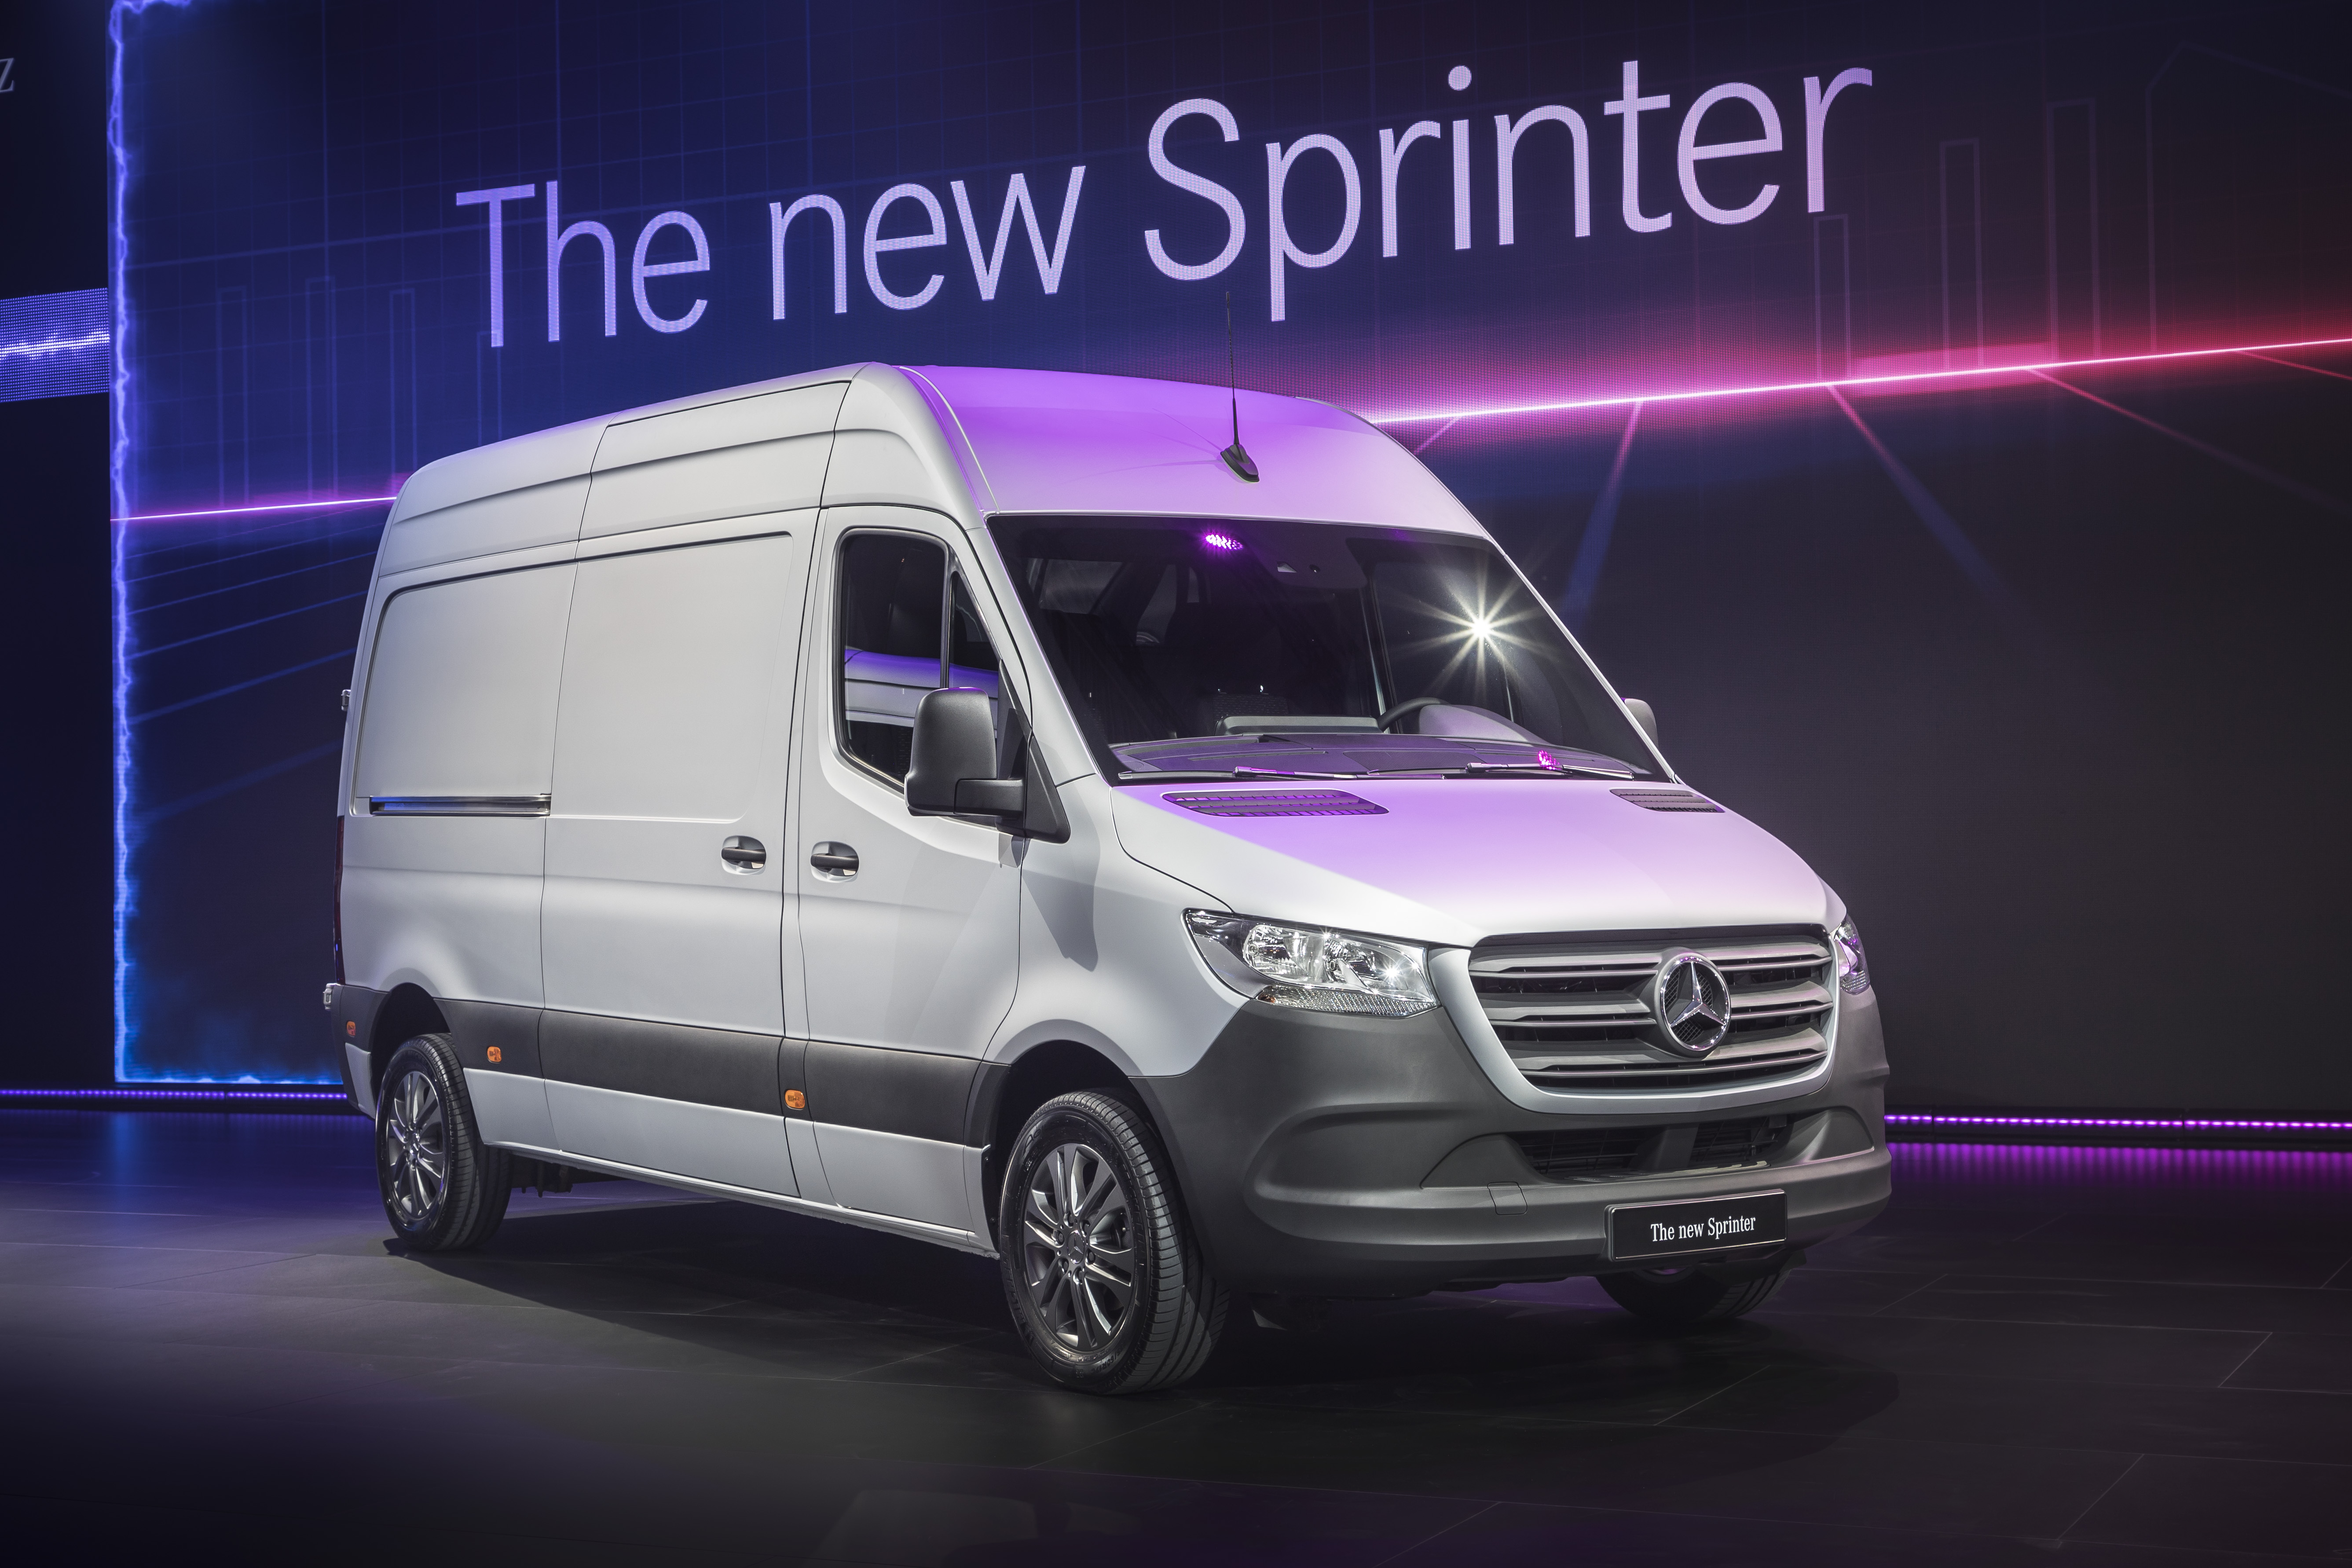 dealership see or play benz a visit safety friends travel sprinter whether convenience team tuscaloosa the mercedes new comfort in style mountains htm to minibus and vacation of weekender